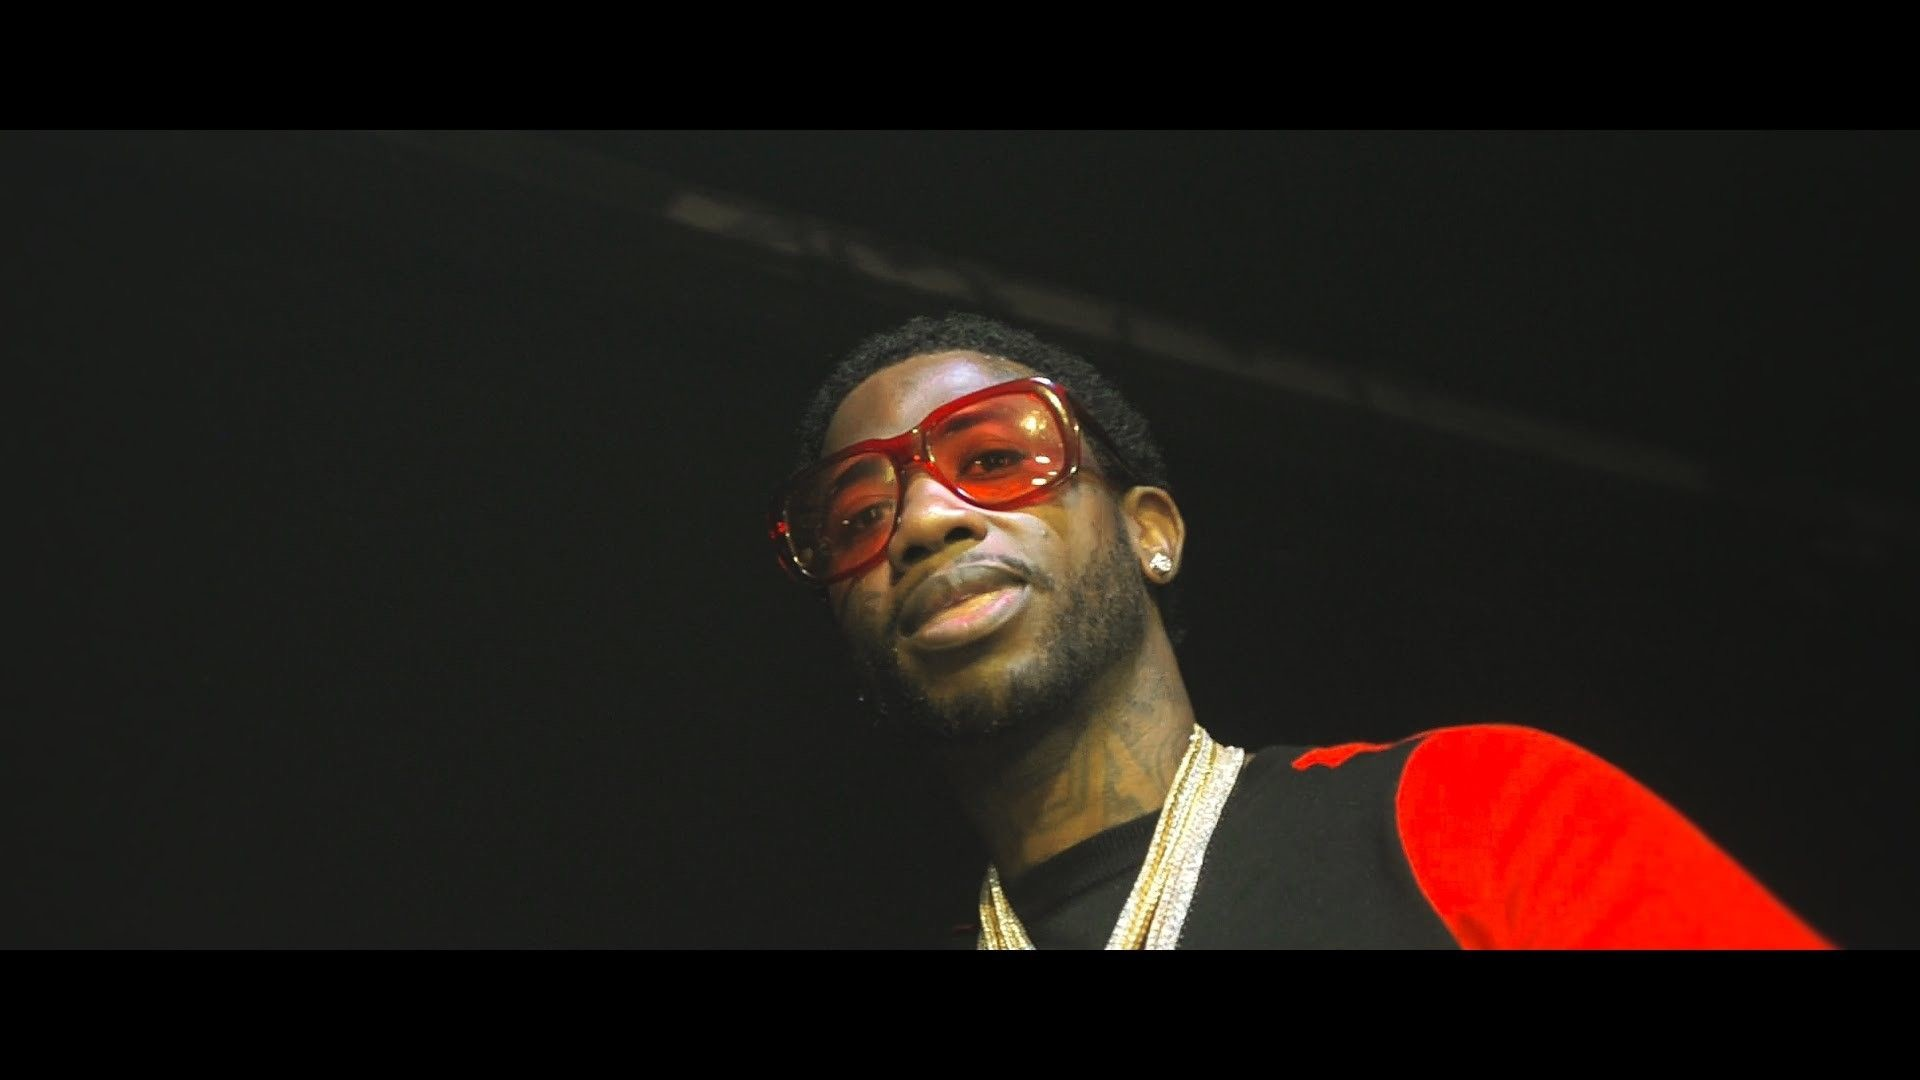 Gucci Mane Wallpaper 73 Images